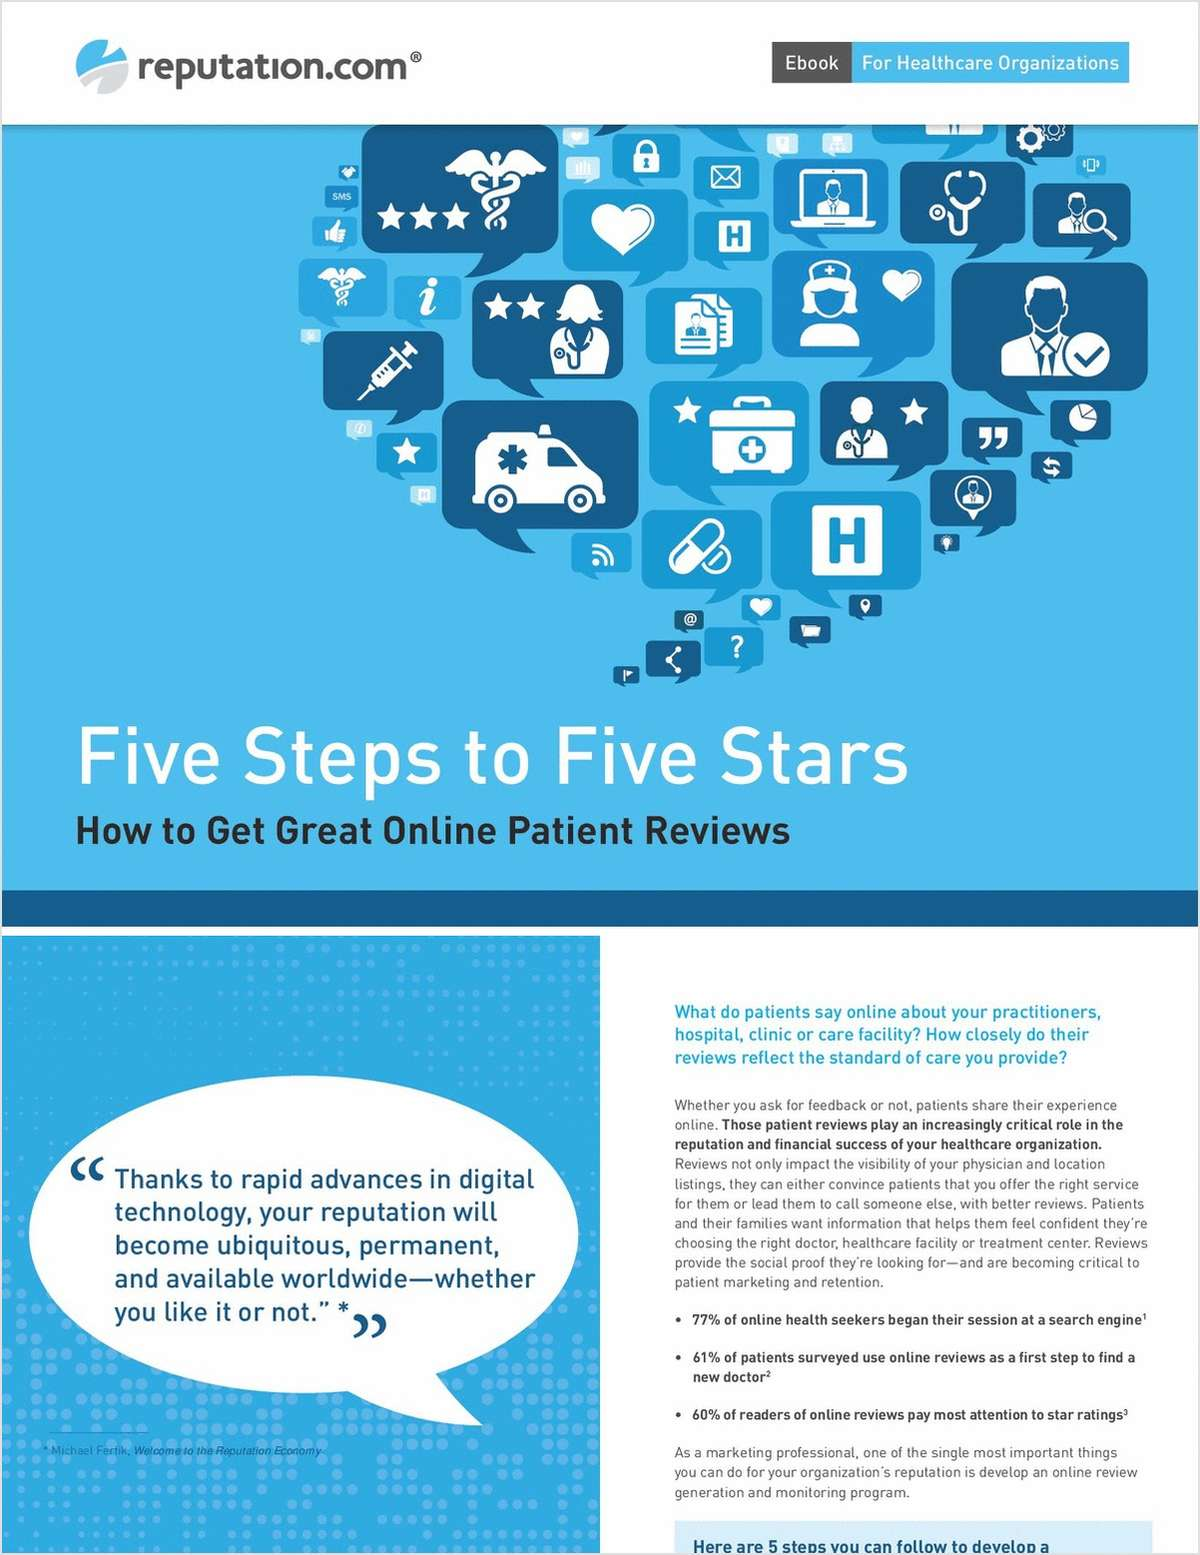 Five Steps to Five Stars: How to Get Great Online Patient Reviews